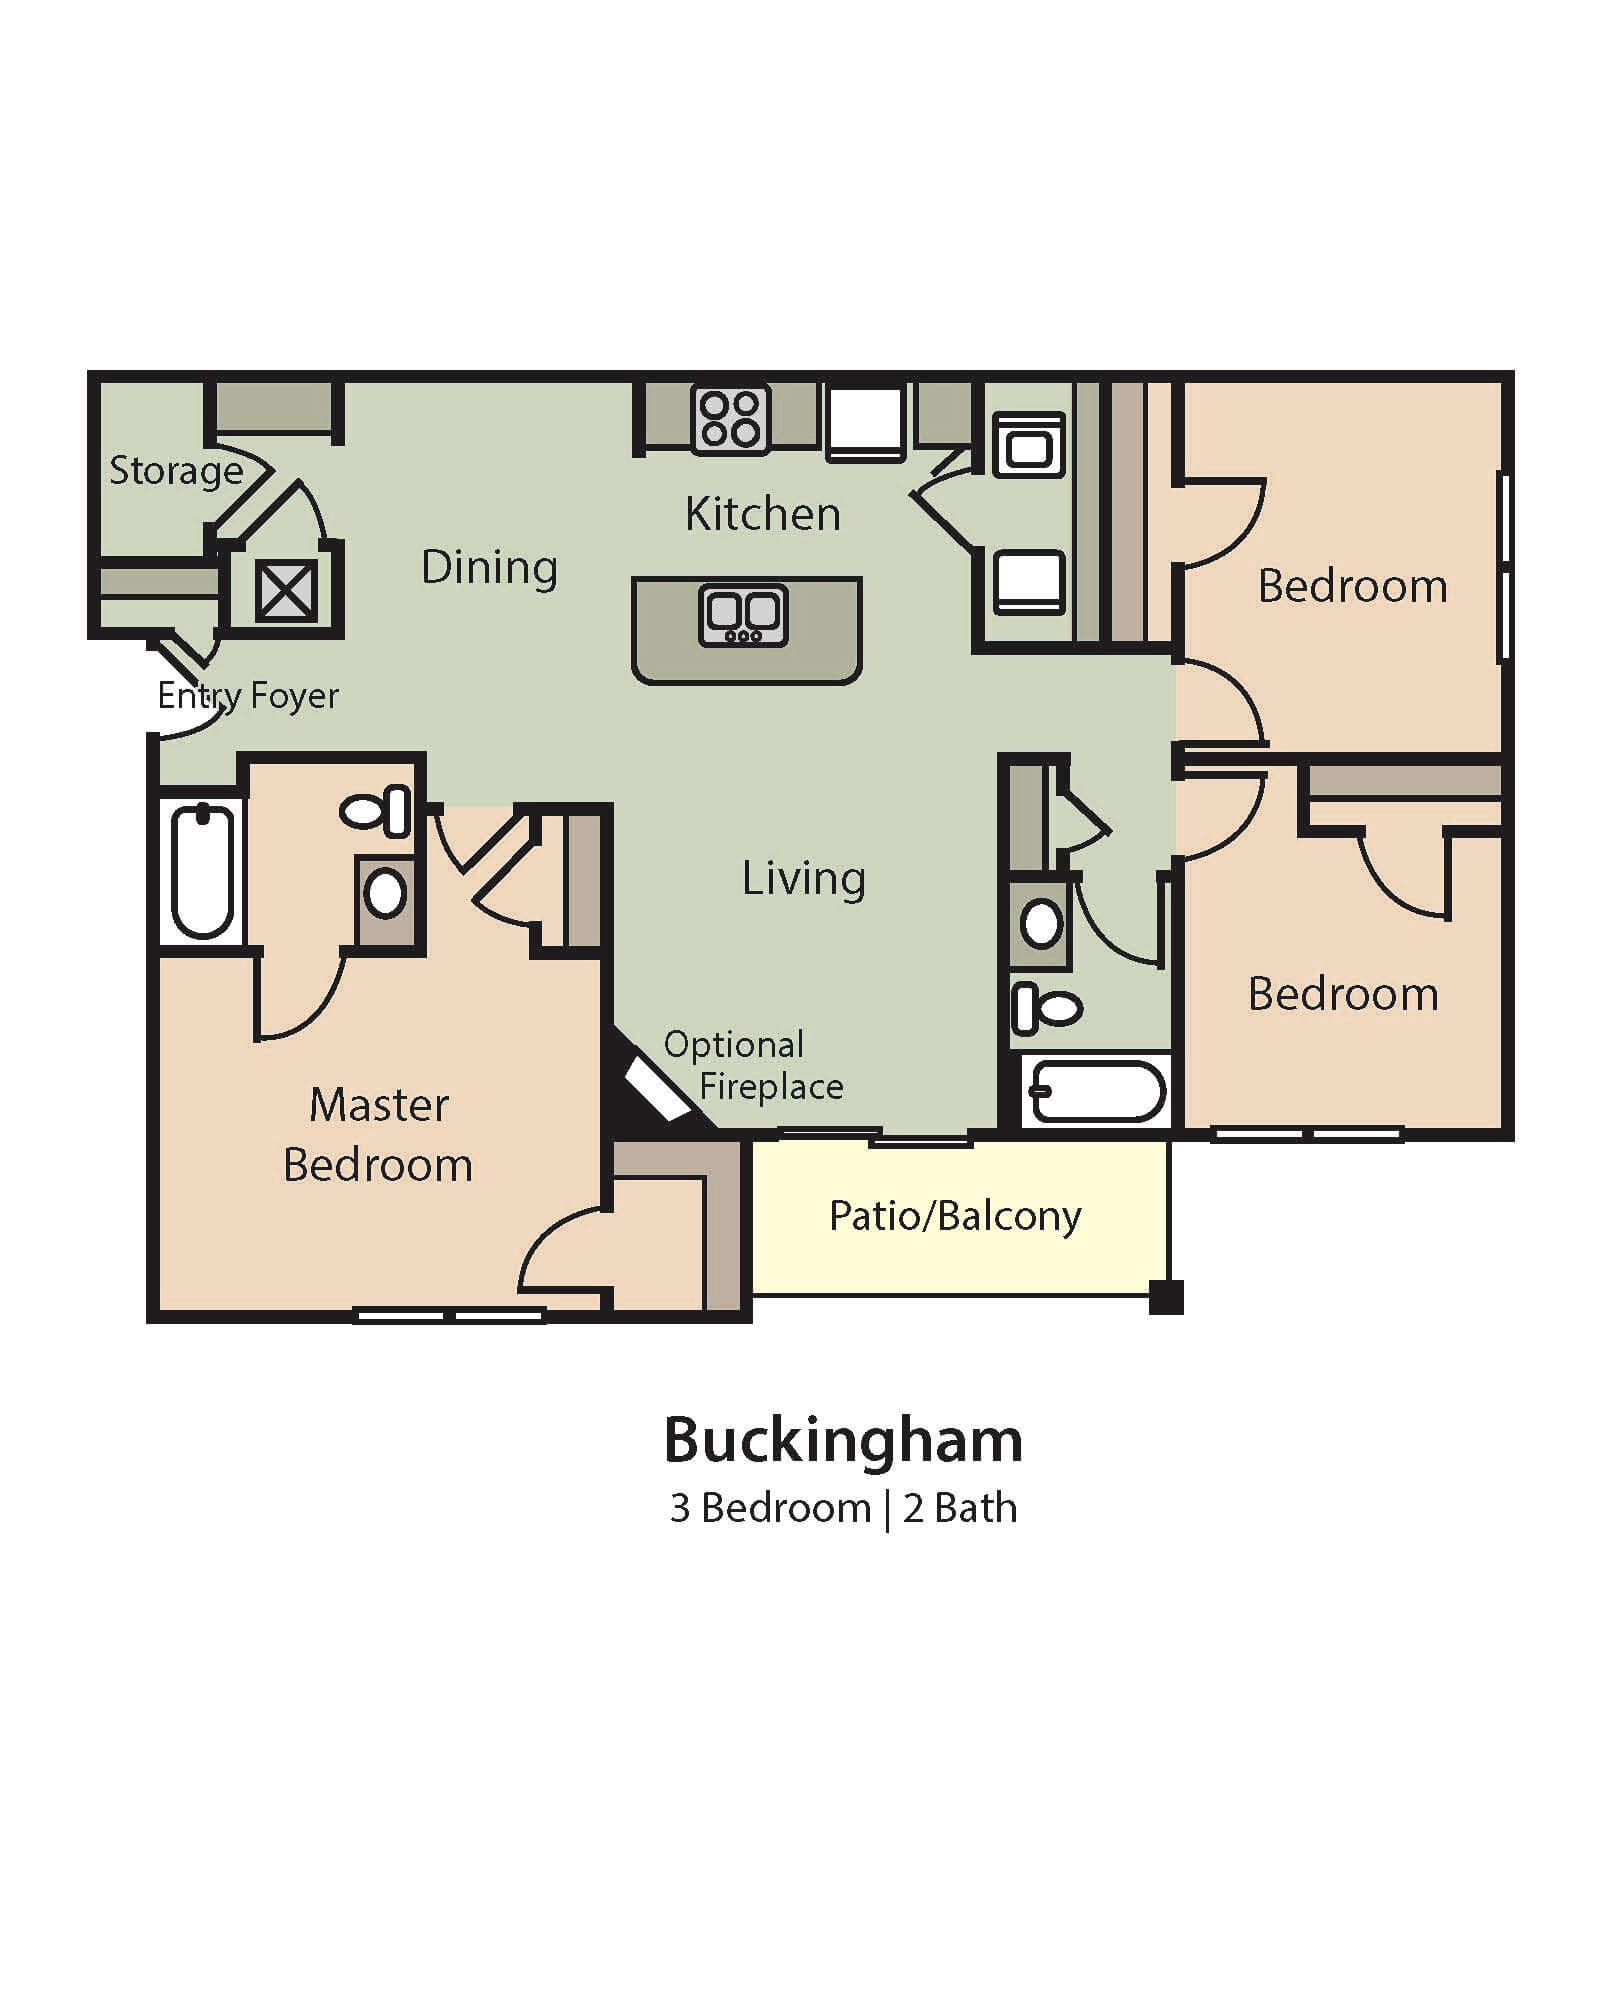 Buckingham Floor Plan, 3 Bedrooms, 2 Baths